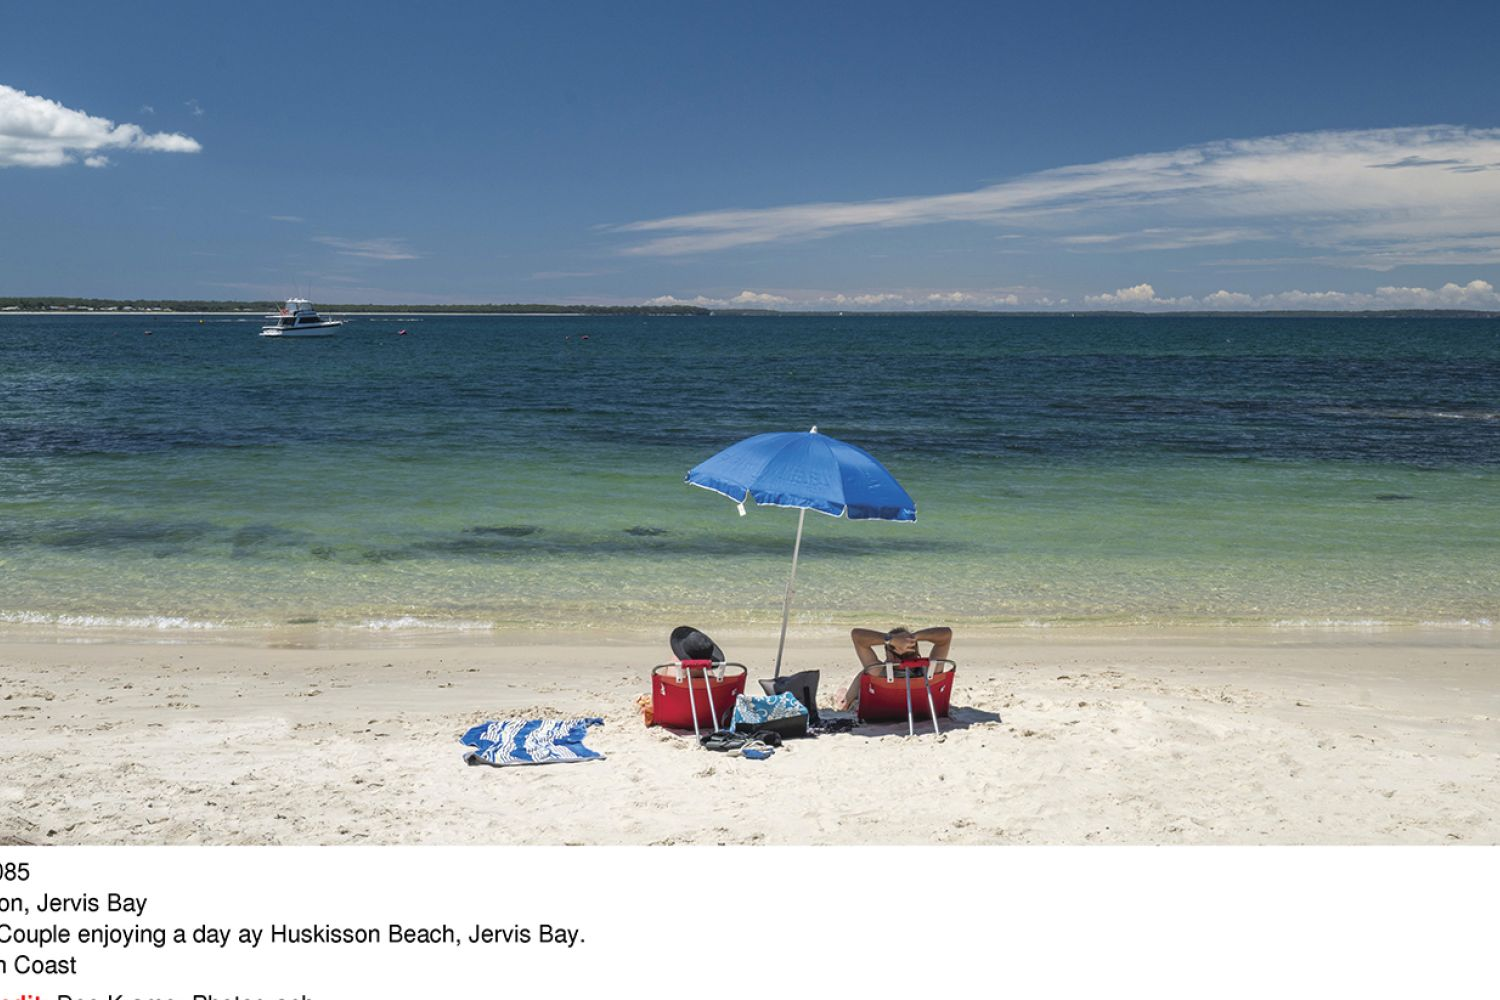 Couple enjoying a day ay Huskisson Beach, Jervis Bay in South Coast